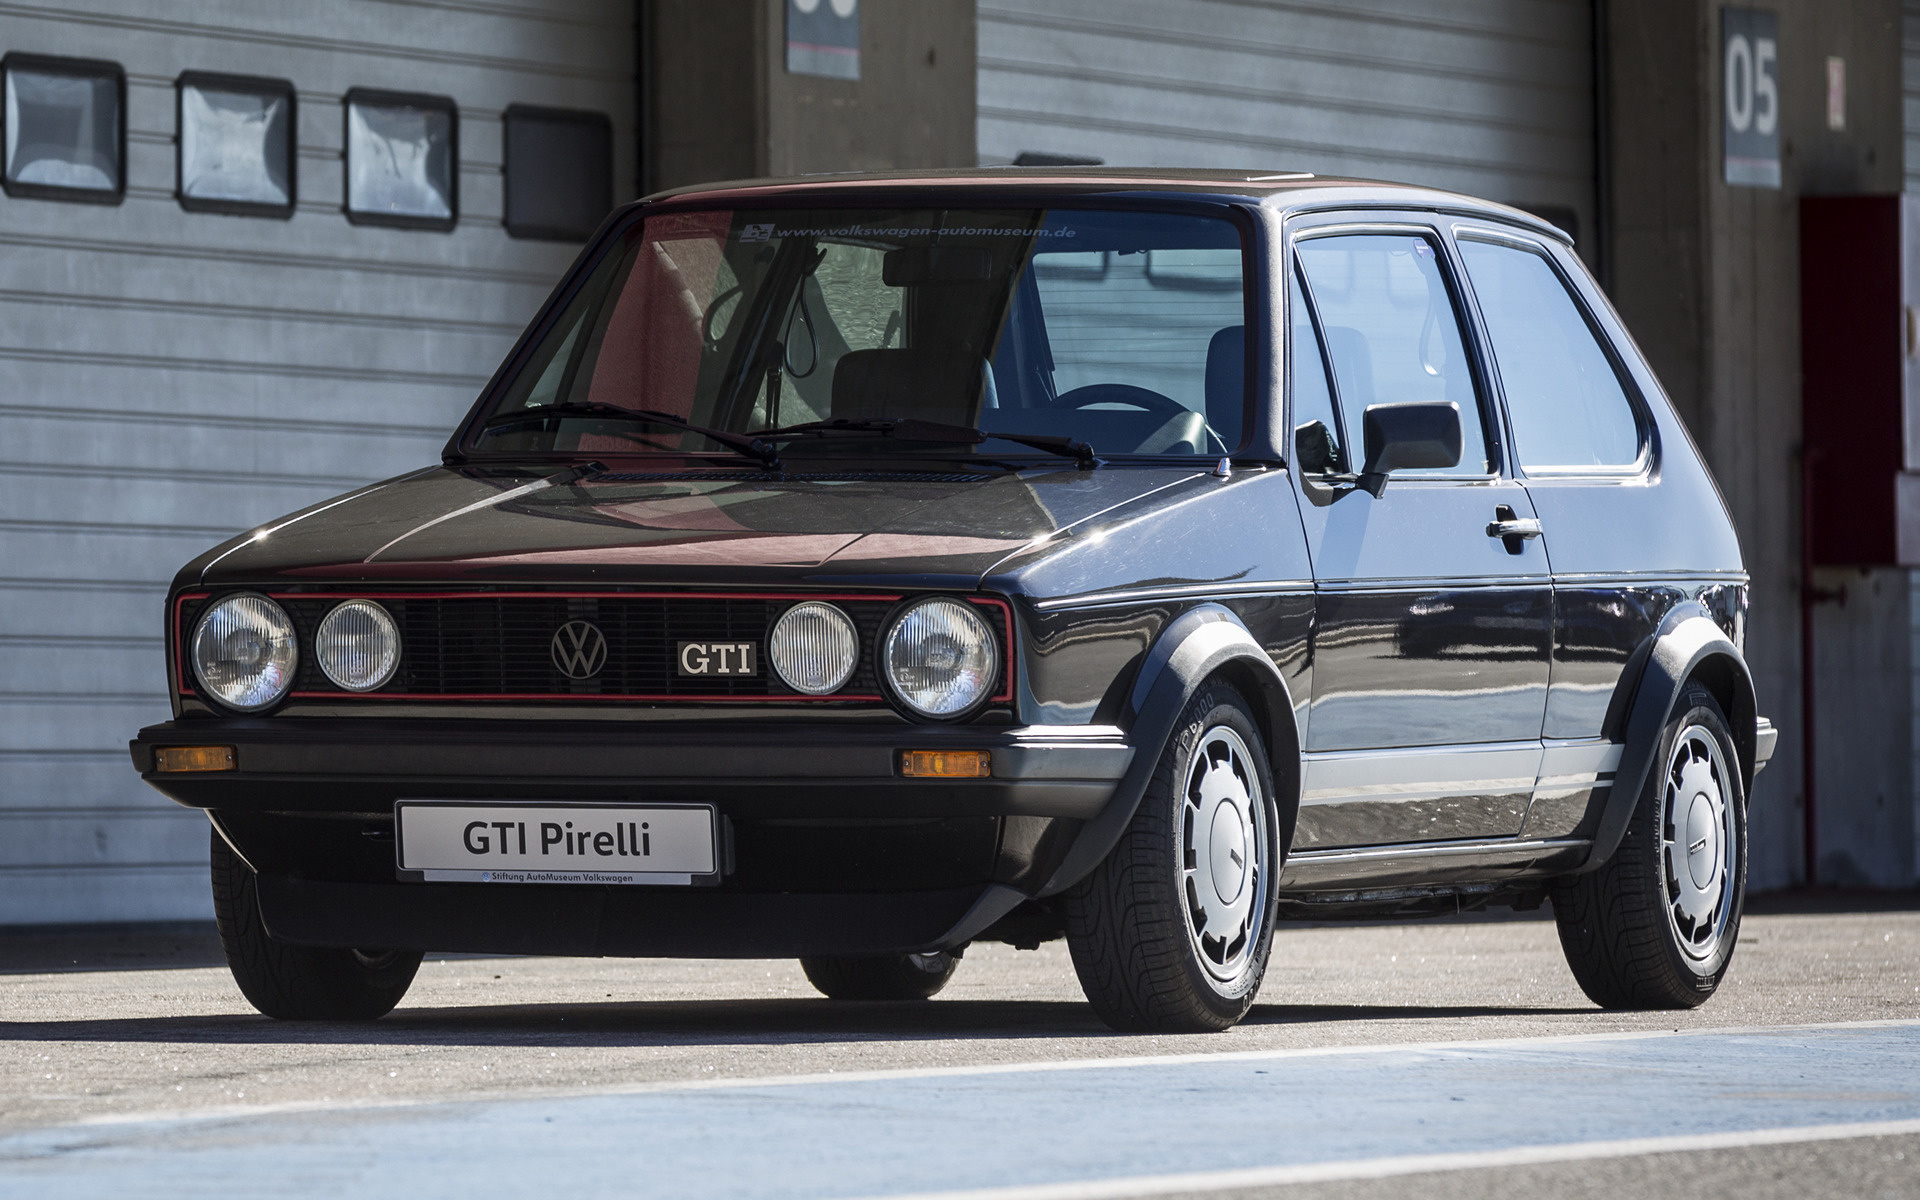 1983 Volkswagen Golf Gti Pirelli 3 Door Wallpapers And